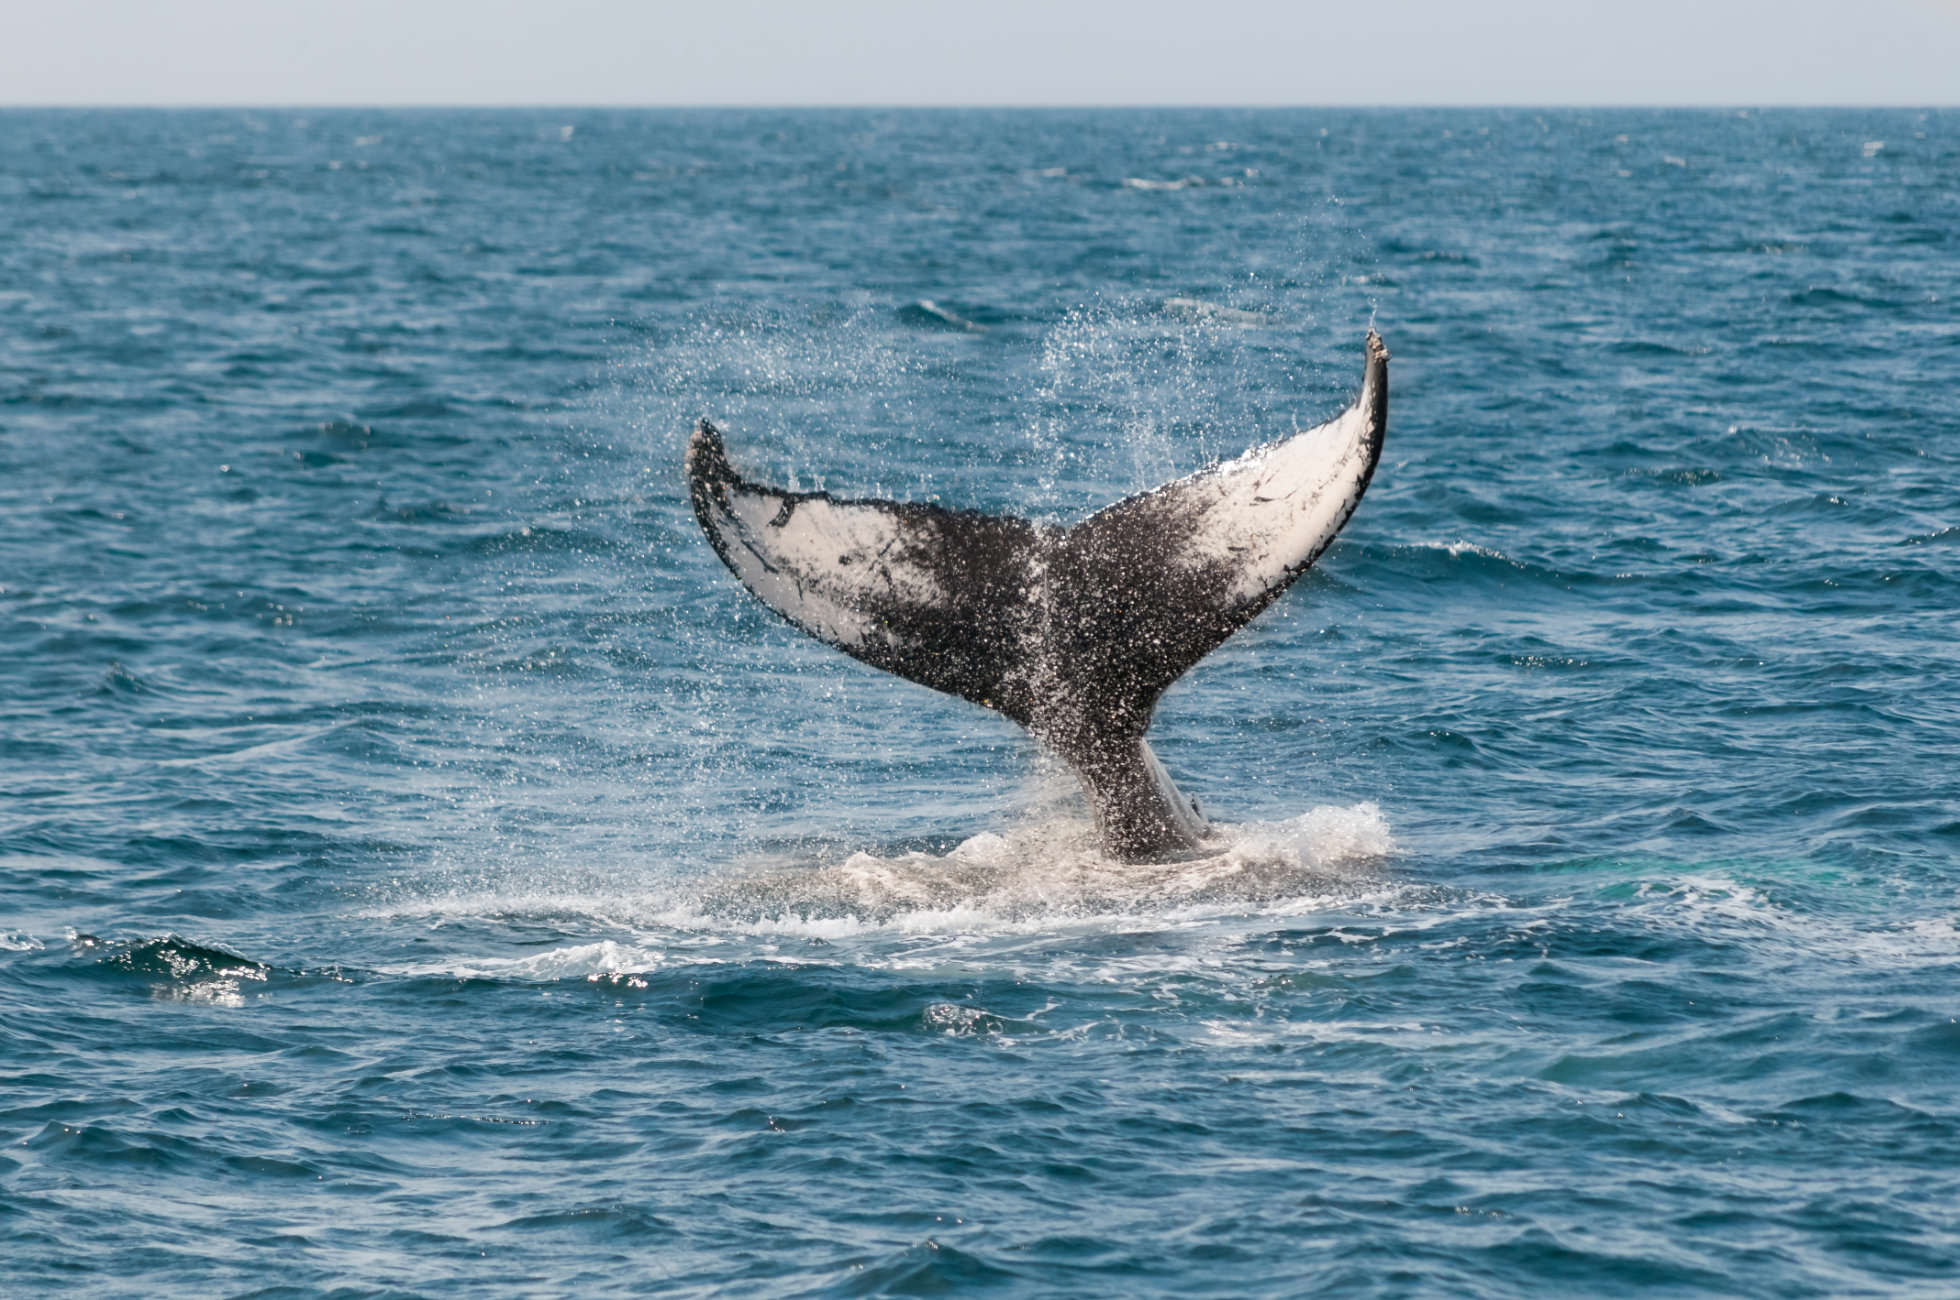 Sri Lanka Whale-Watching